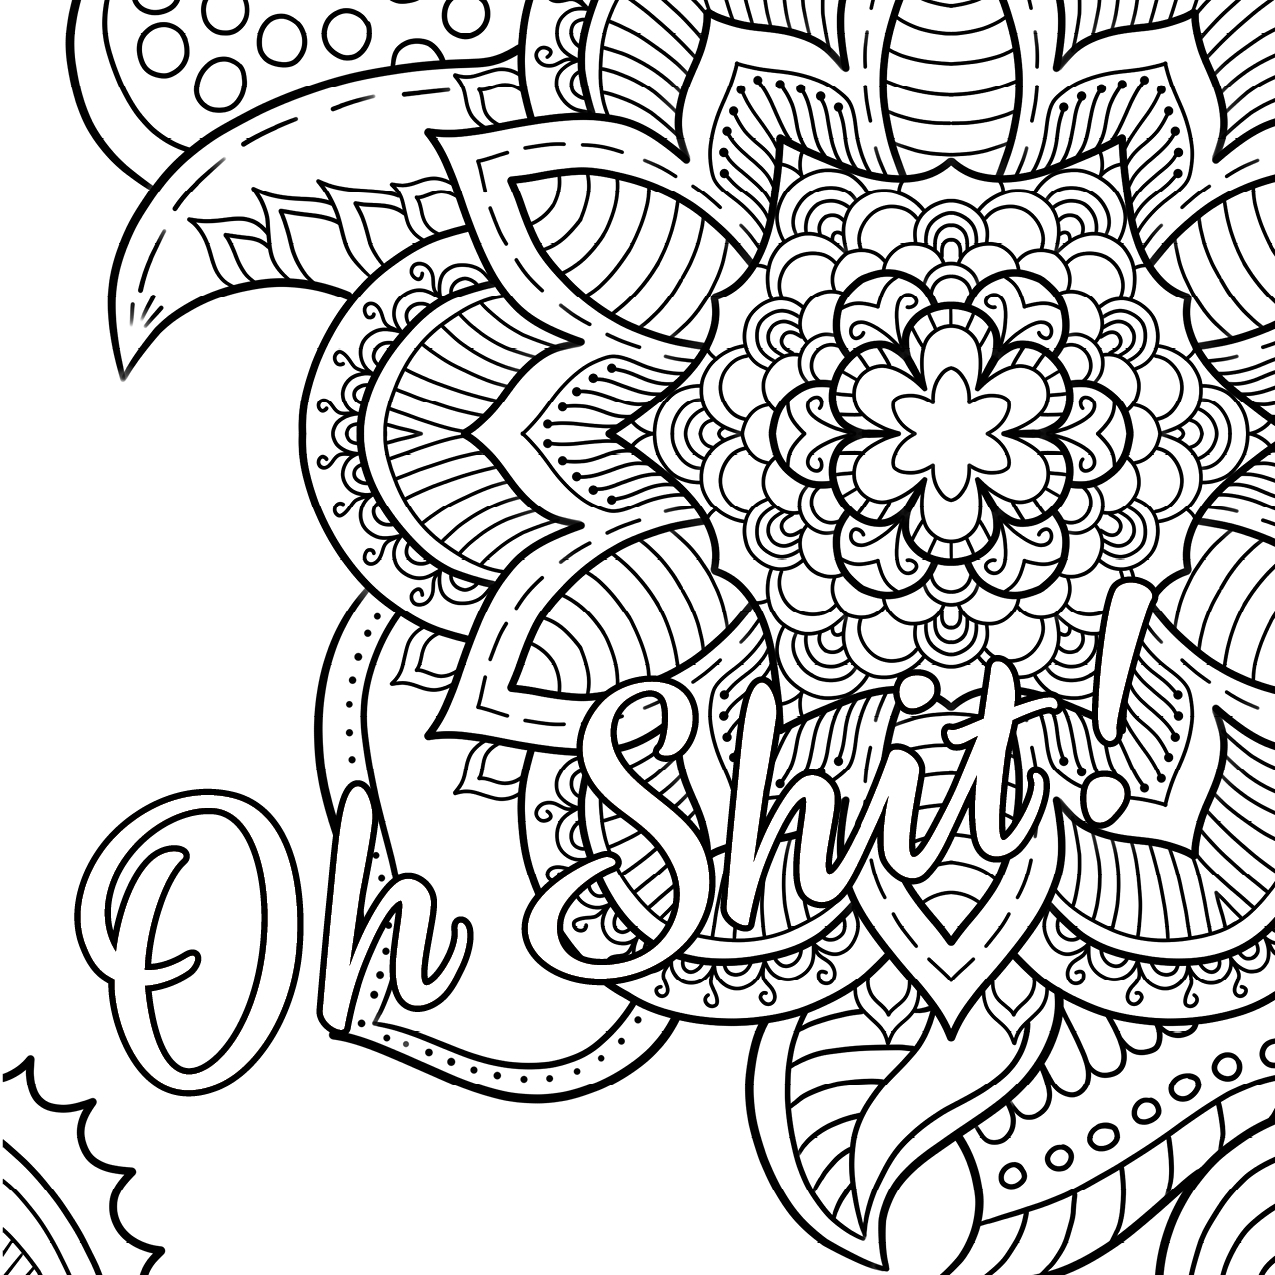 Free Printable Coloring Pages For Adults Only Swear Words Gallery - Free Printable Coloring Pages For Adults Only Swear Words